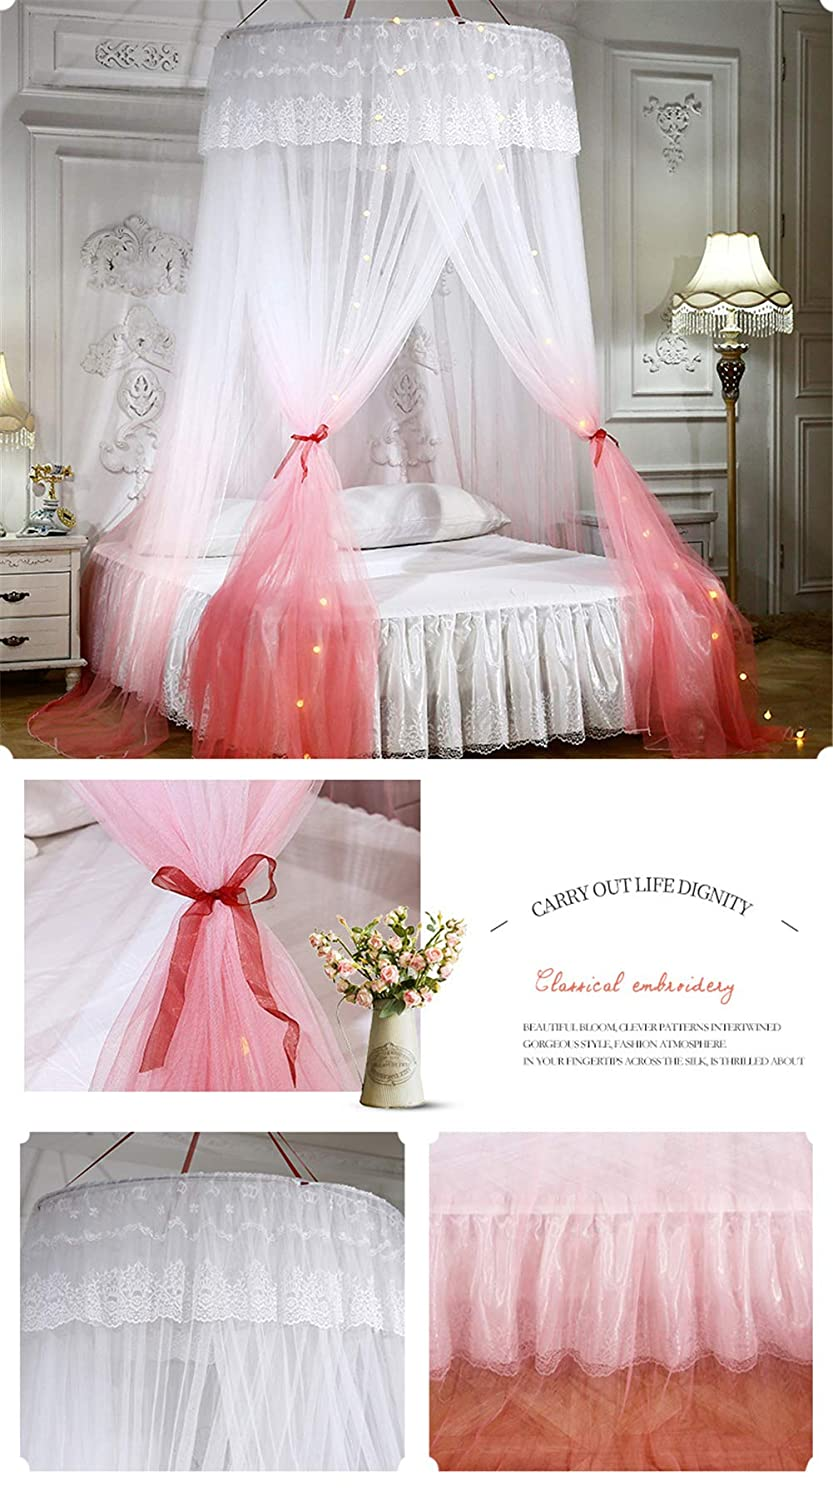 Diagtree Dome Mosquito Net Bed Canopy White, Dome White